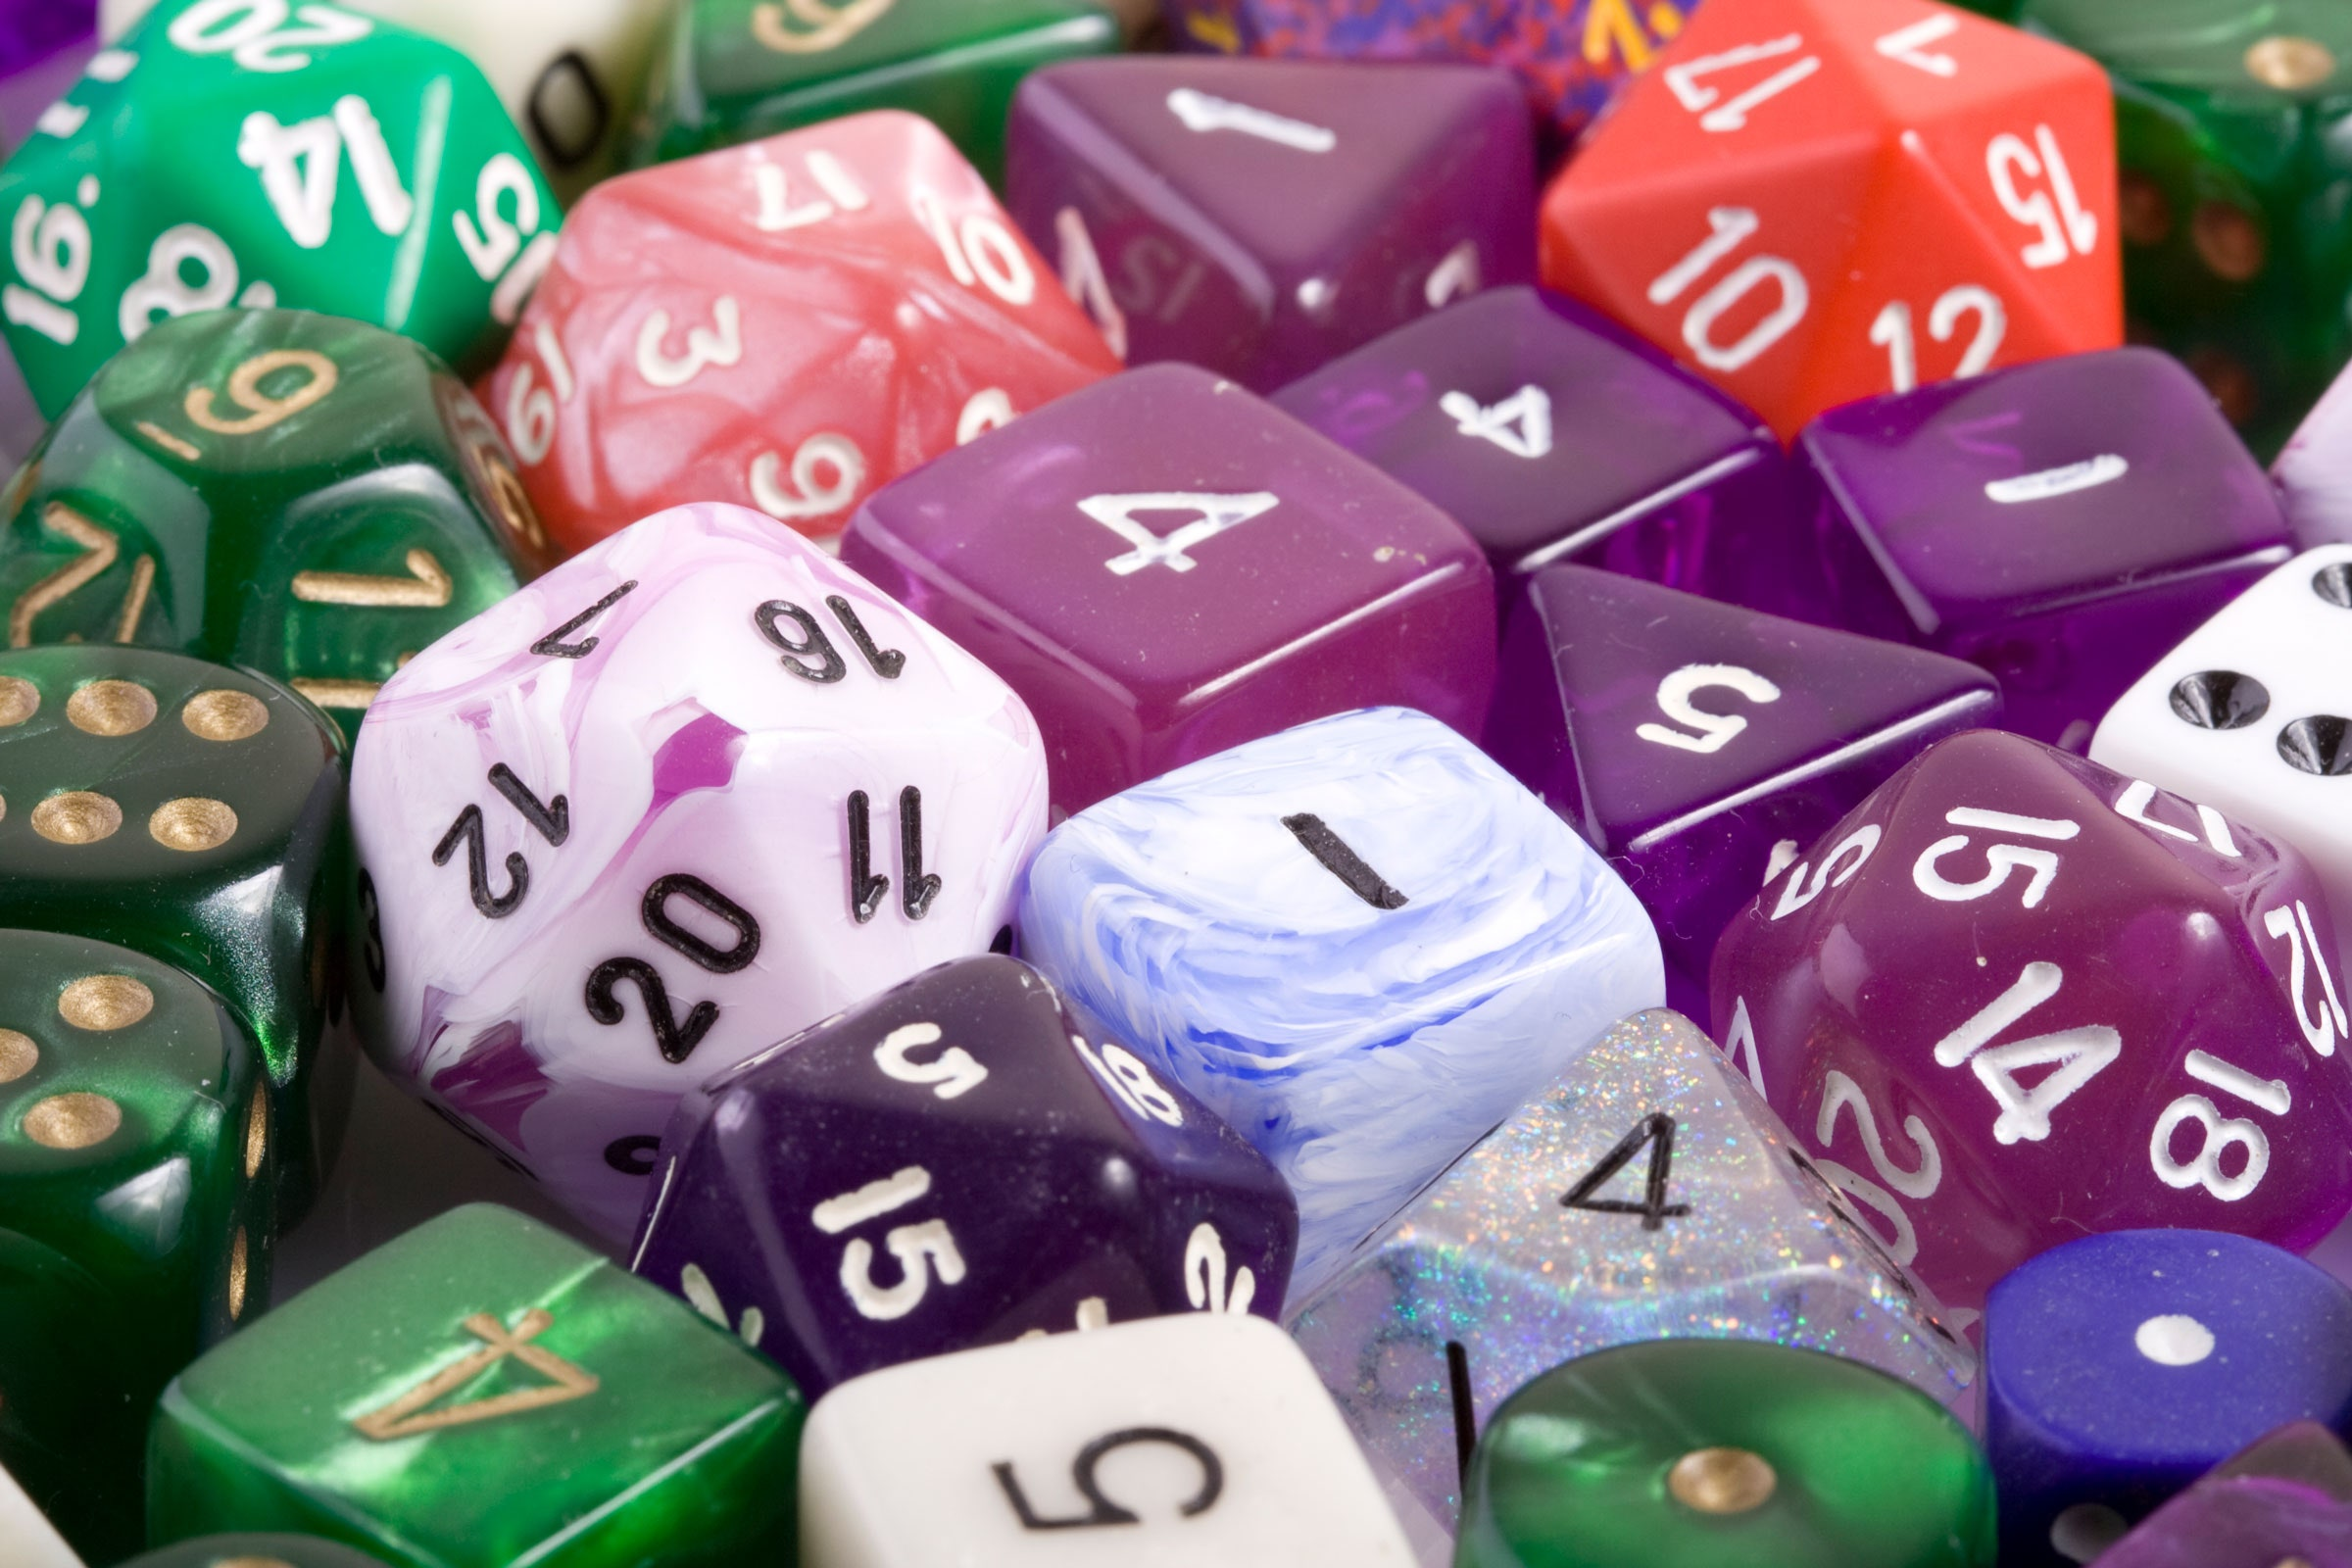 How to Get Started With Dungeons & Dragons